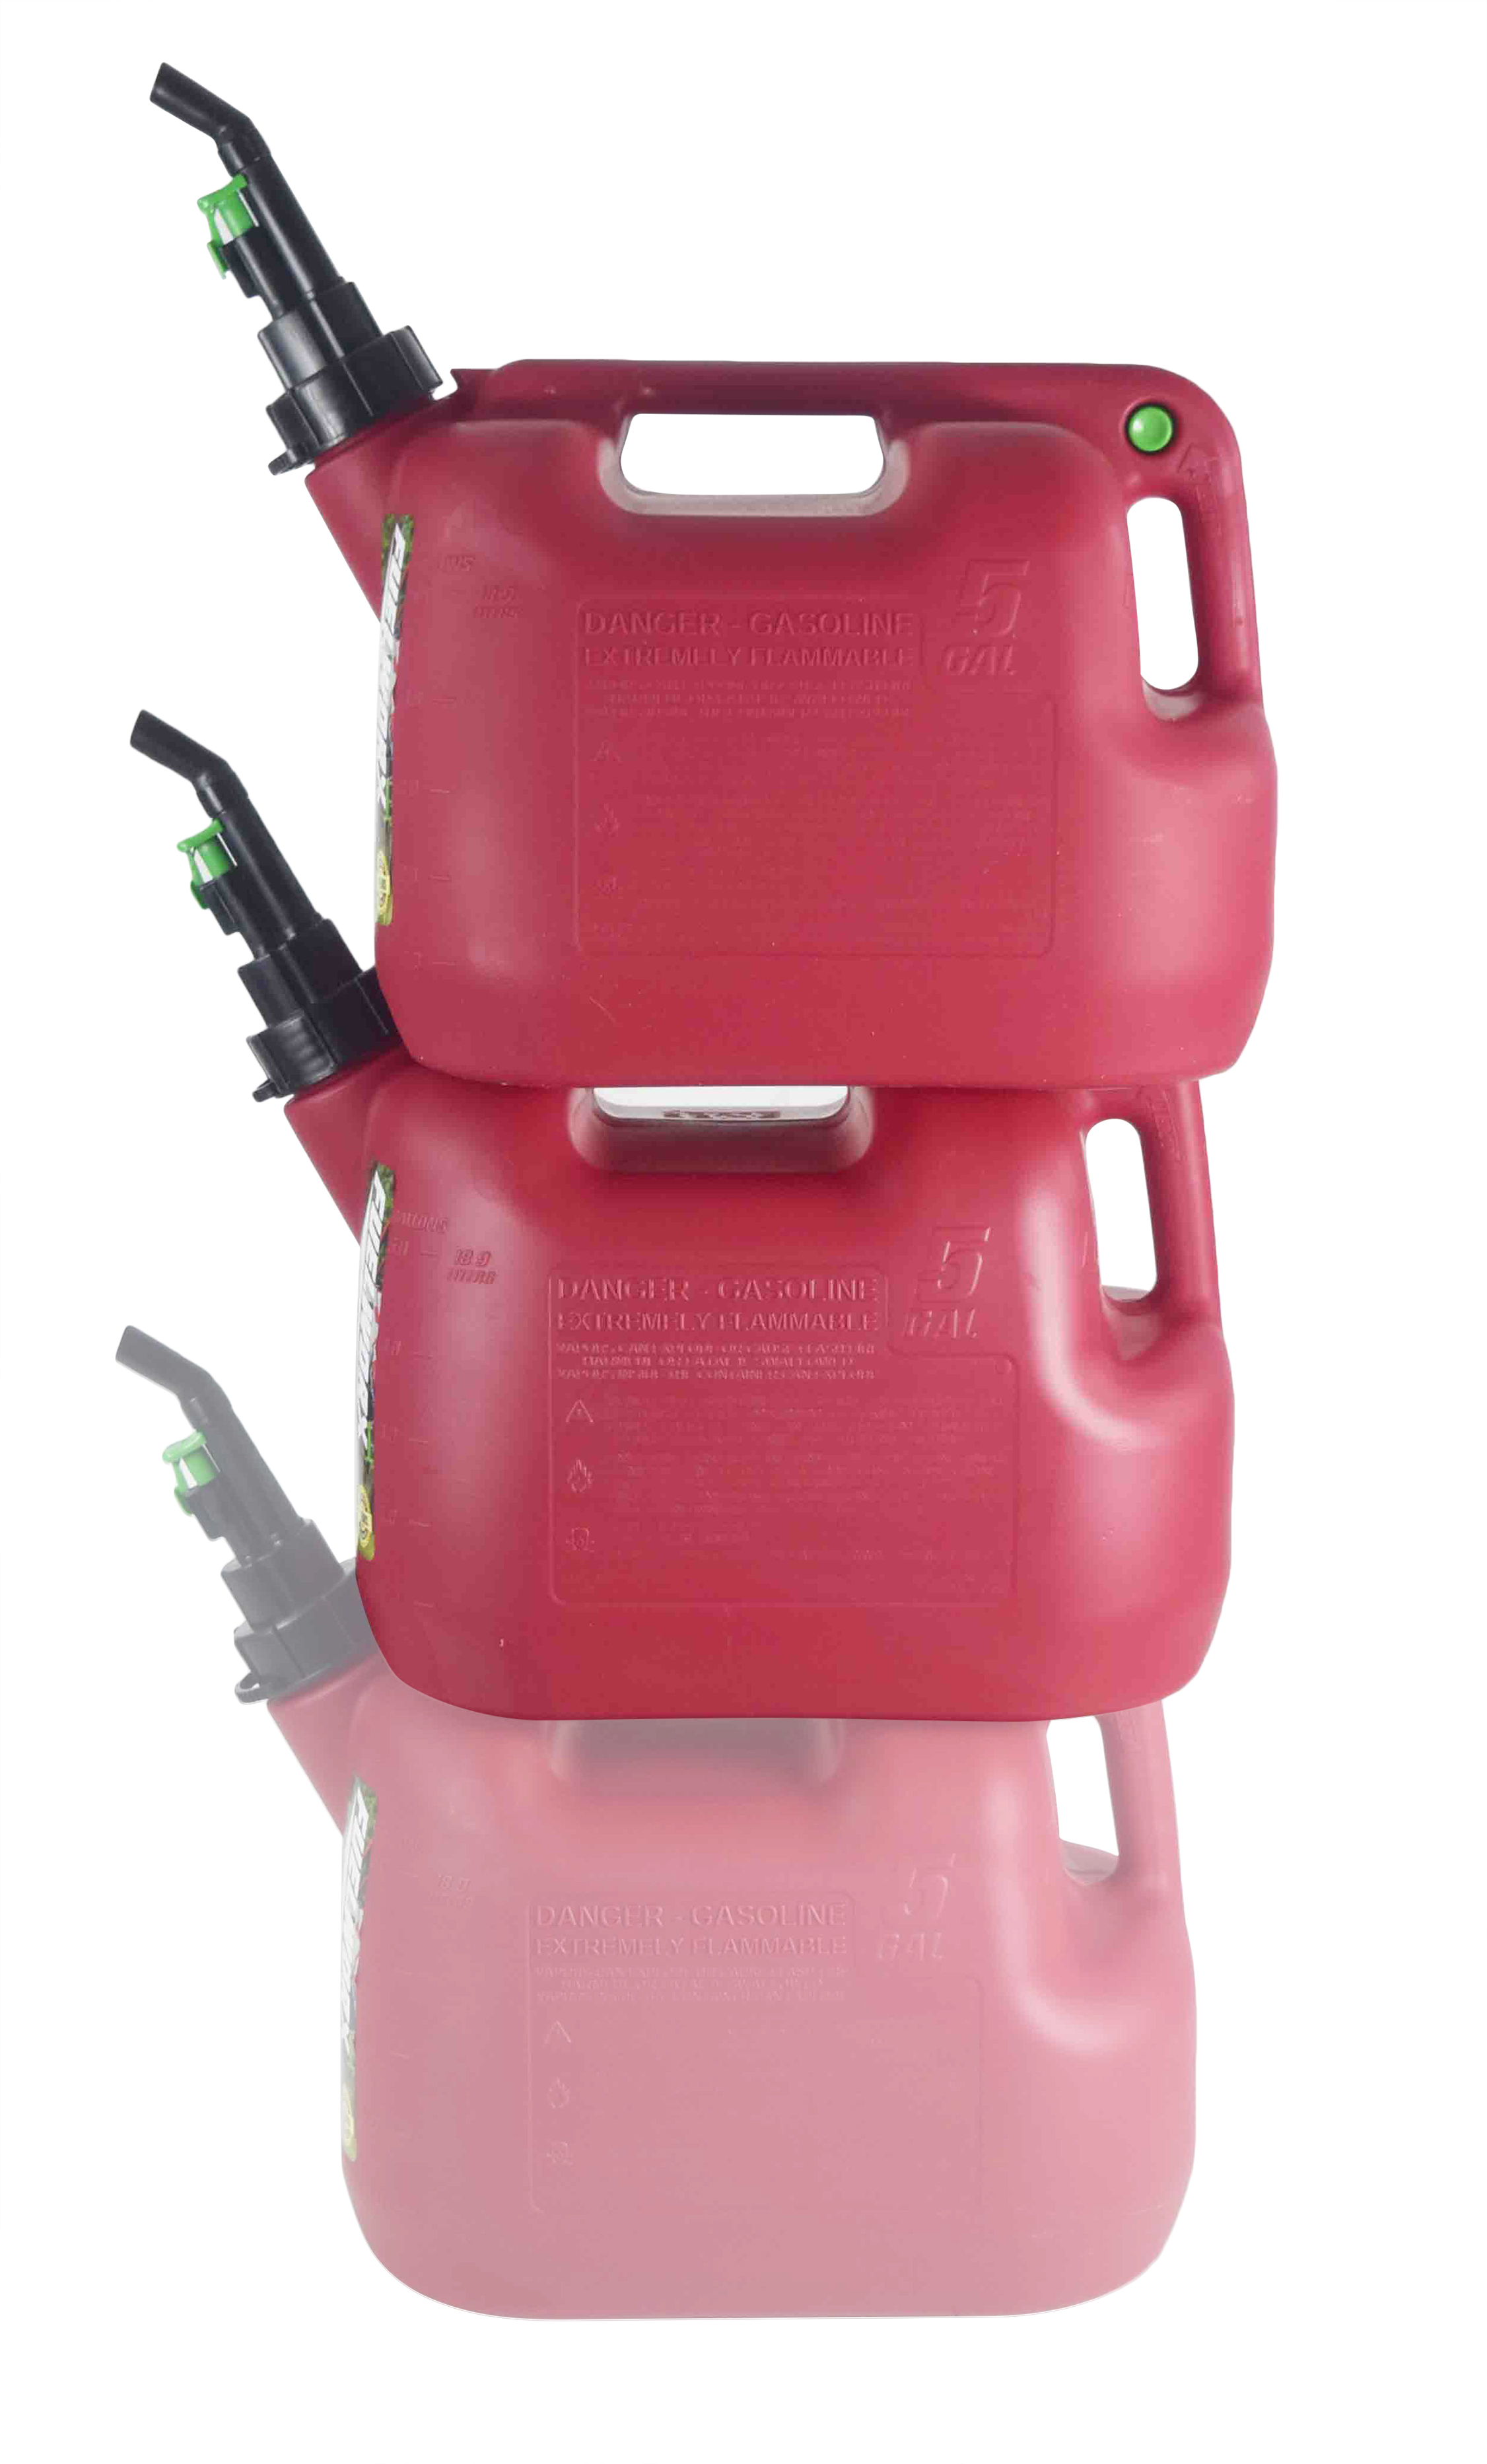 Fuelworx-Red-5-Gallon-Stackable-Fast-Pour-Gas-Fuel-Can-CARB-Compliant-Made-in-The-USA-5-Gallon-Gas-Can-2-Pack-image-1